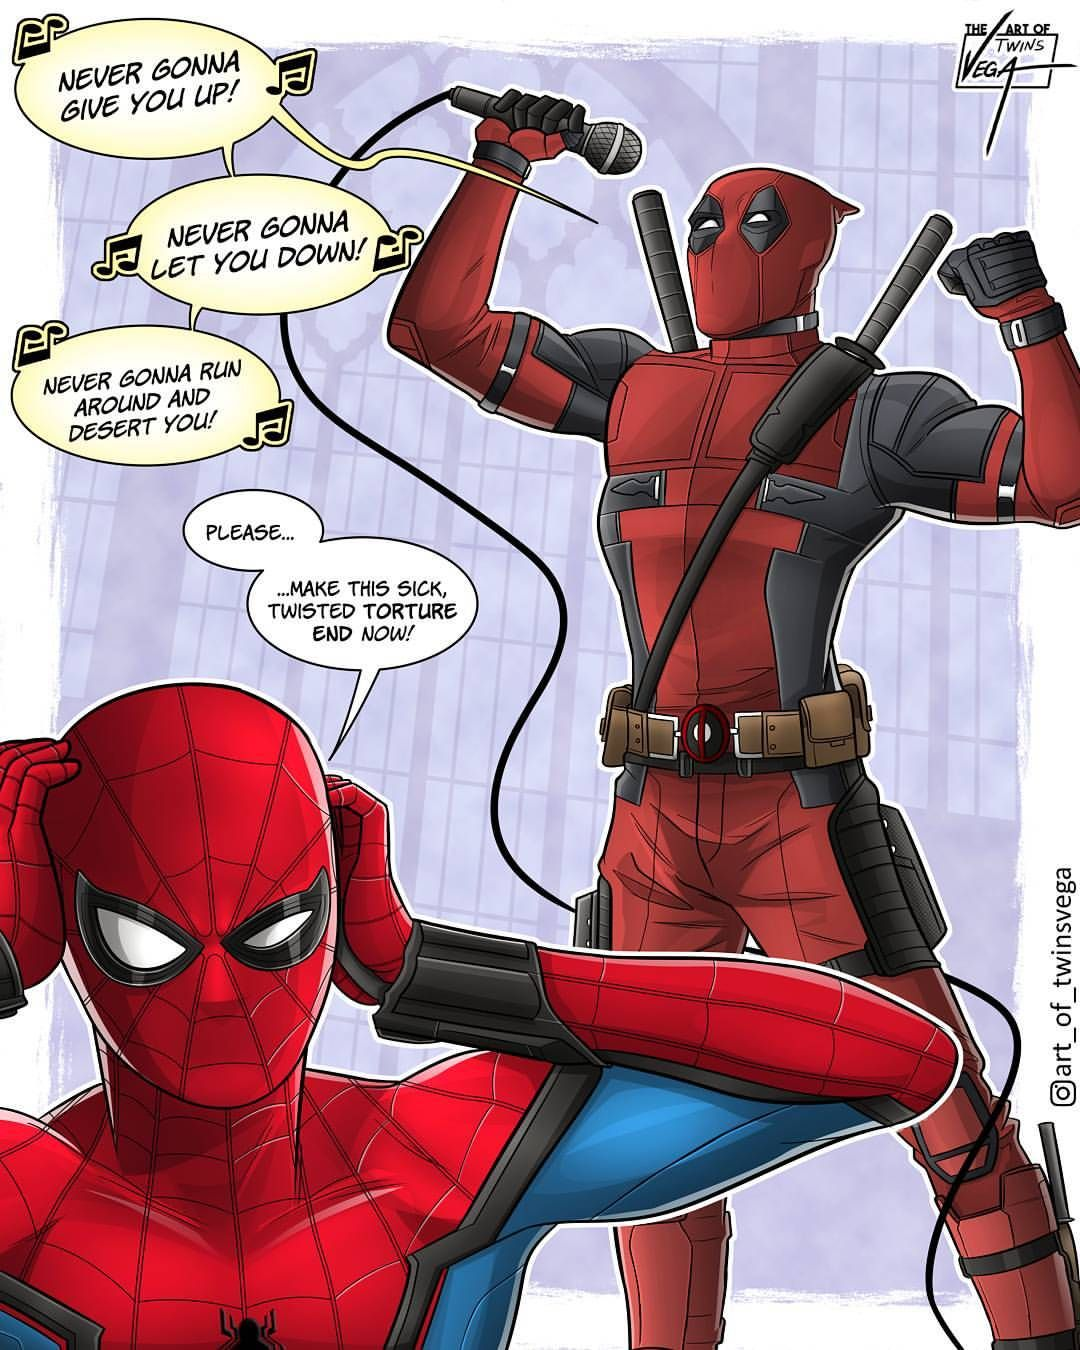 Let S Face It There Are Just Some Duos That Were Simply Meant To Be Mario And Luigi Pb And J But The Best Of Deadpool Comic Spiderman Comic Spiderman Funny